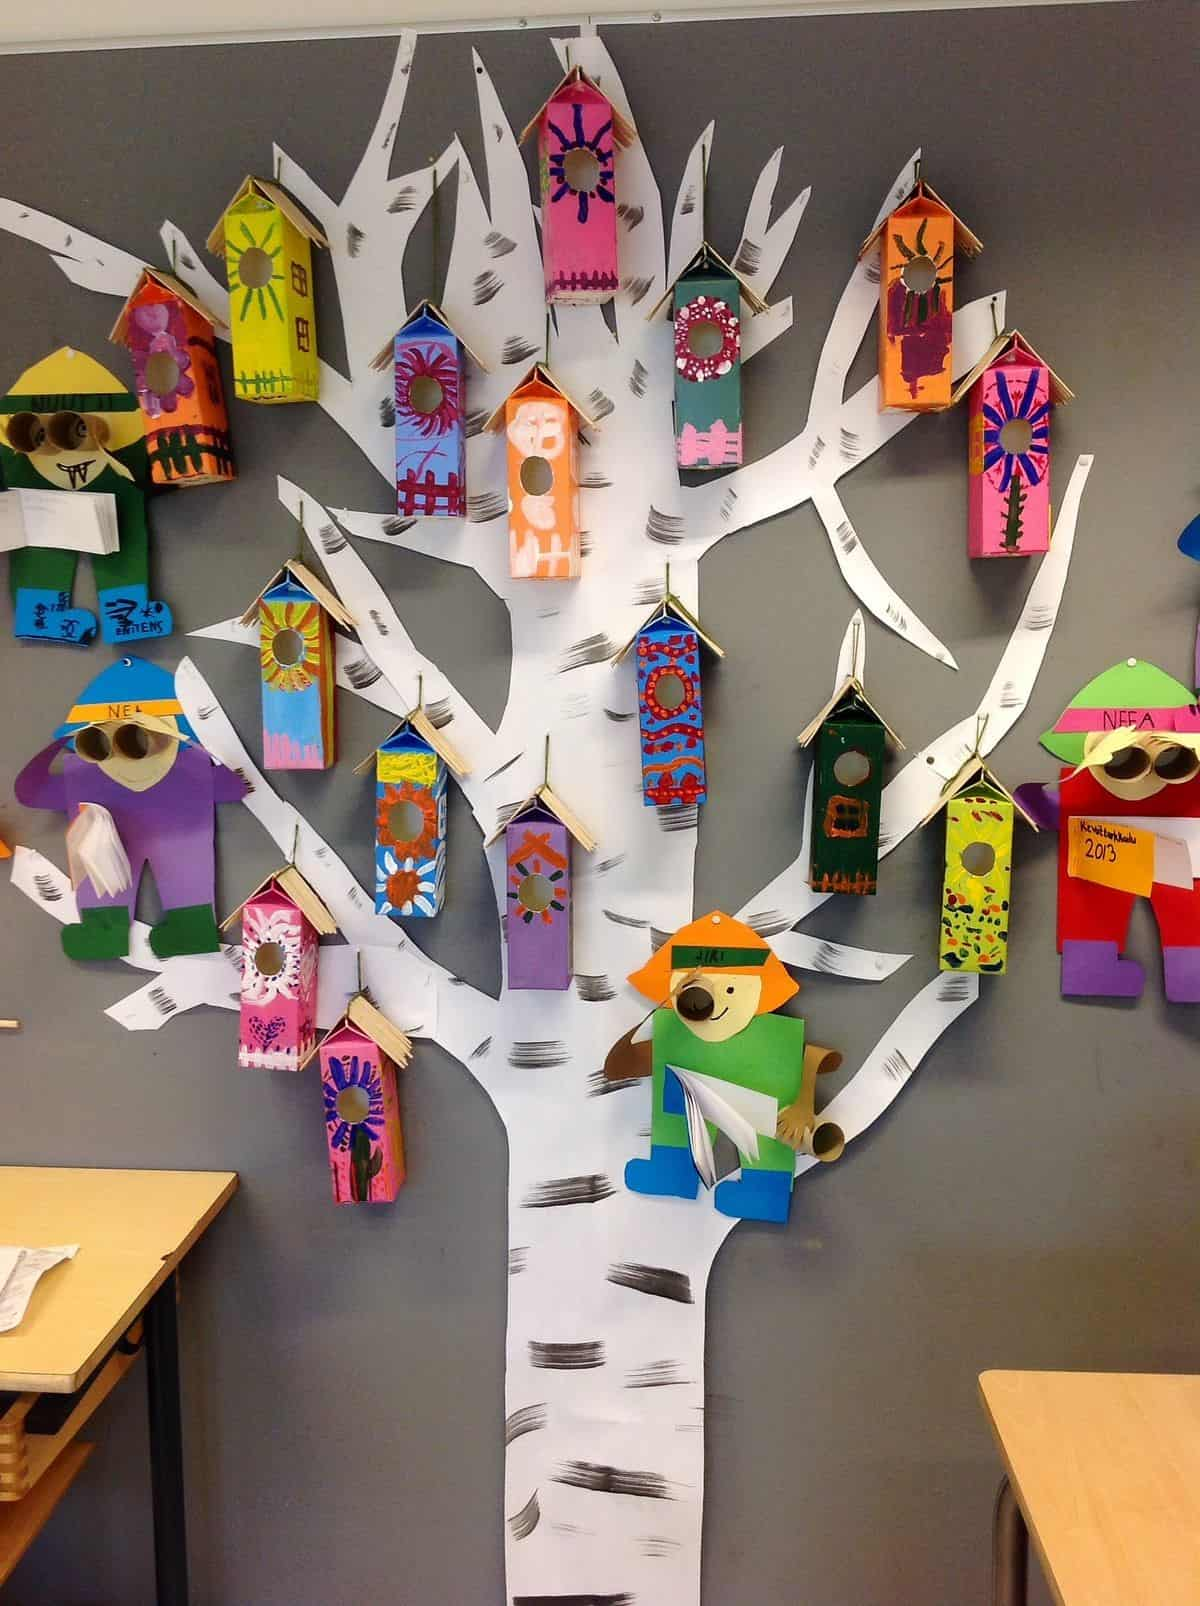 Classroom Decorating Ideas - Remodel Or Move